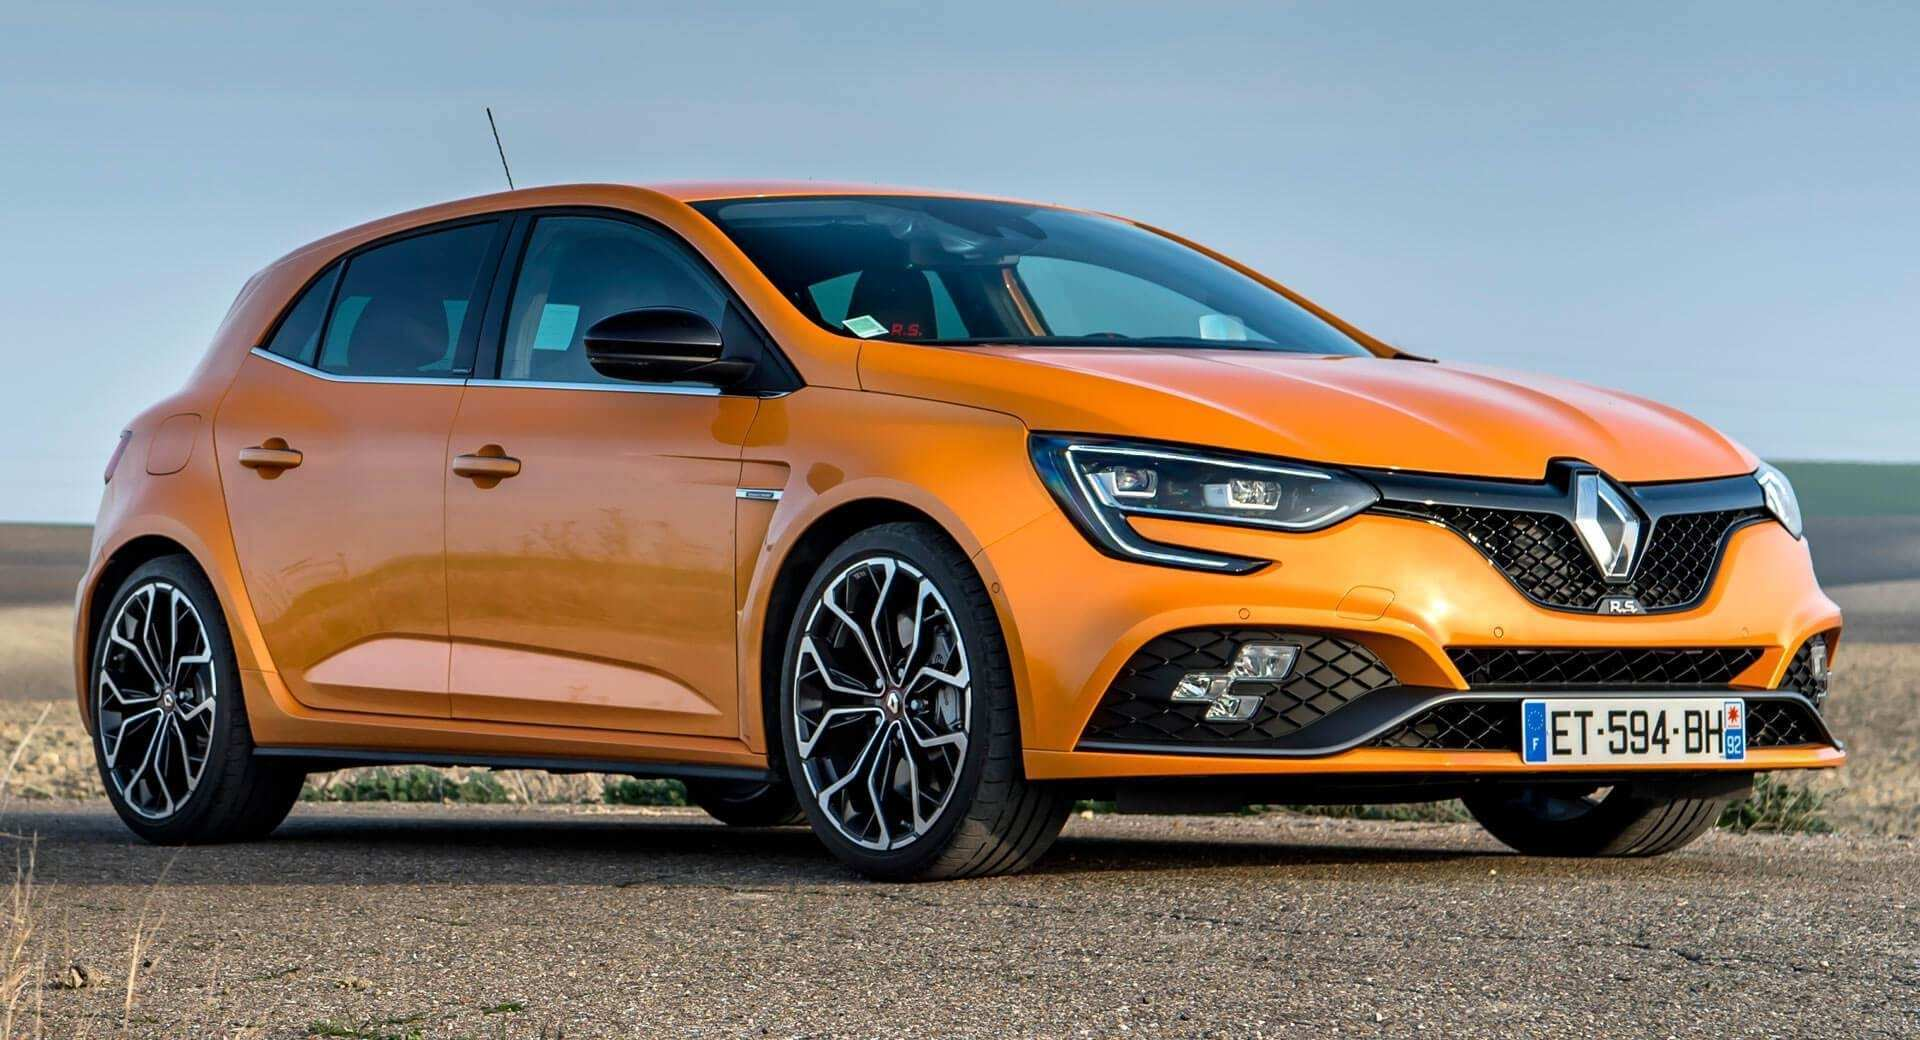 31 All New 2019 Renault Megane SUV Concept And Review